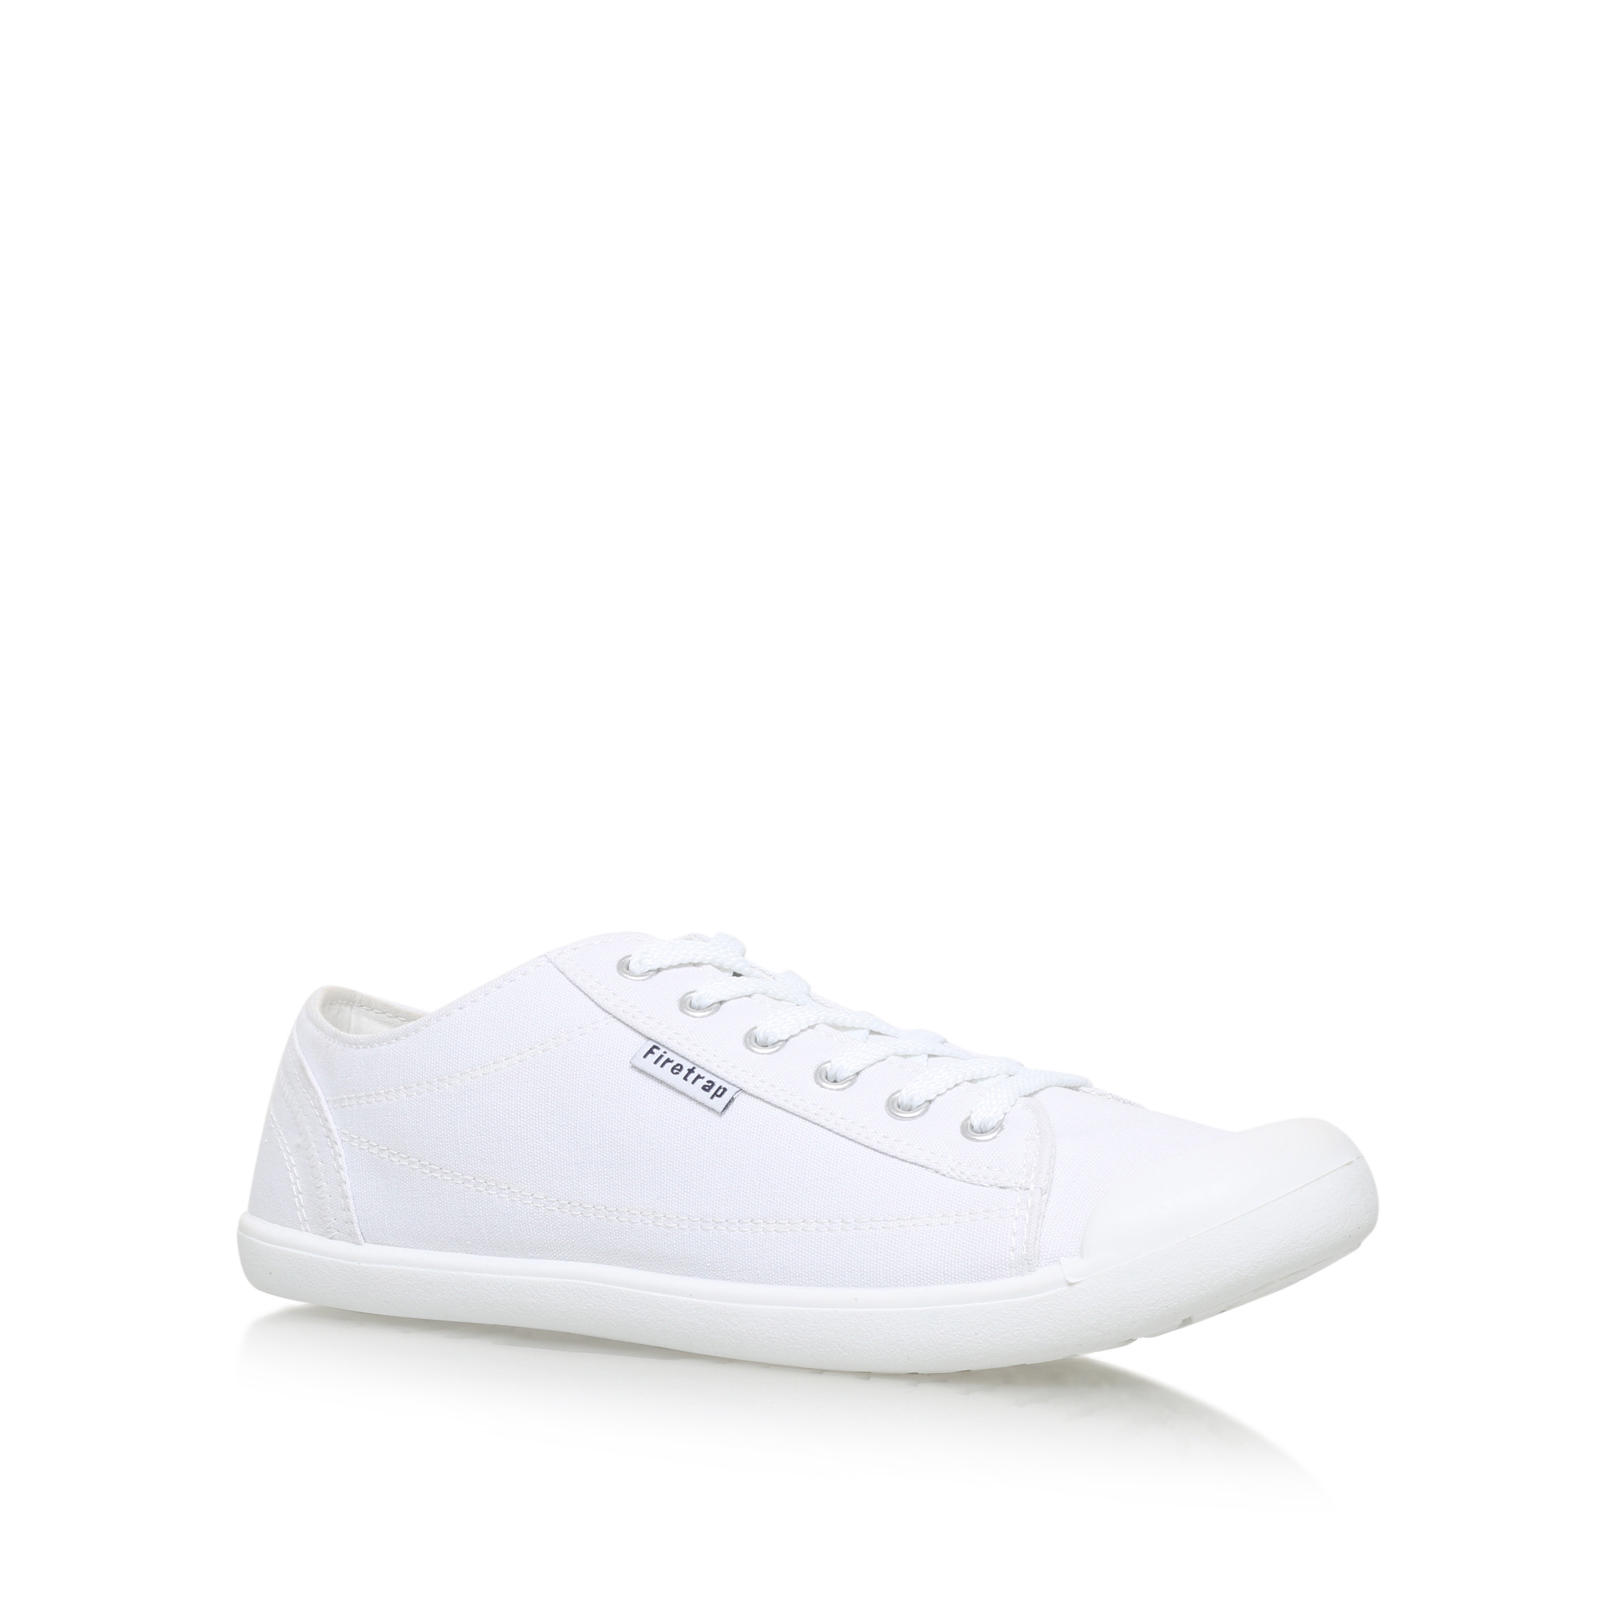 CANVAS FLAT LACE UP